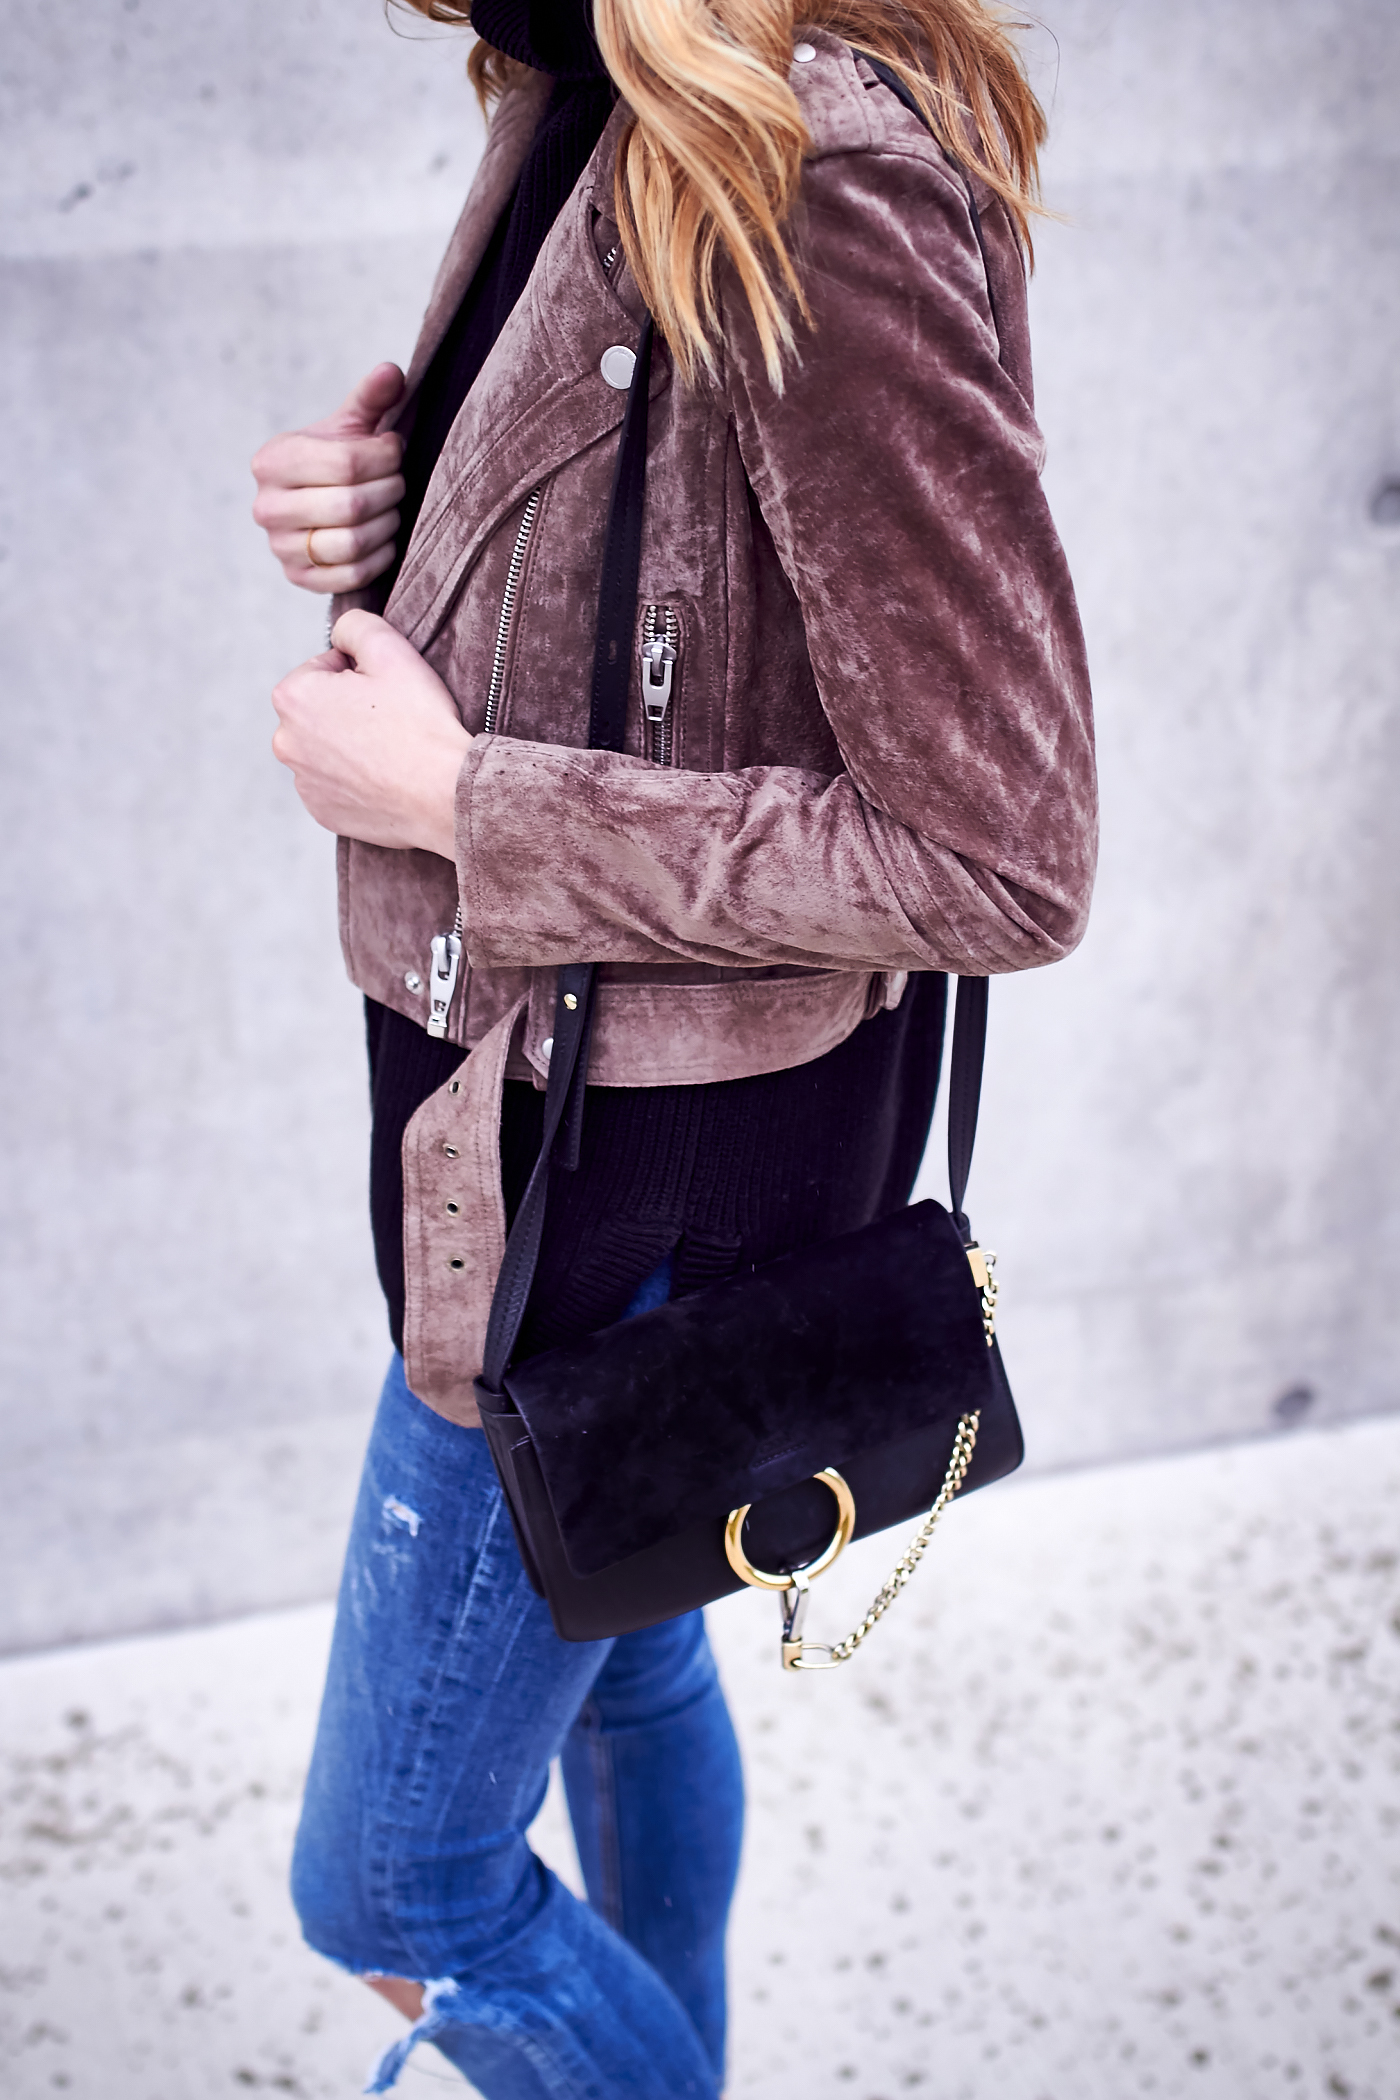 fashion-jackson-chloe-faye-handbag-blanknyc-morning-suede-moto-jacket-ripped-denim-jeans